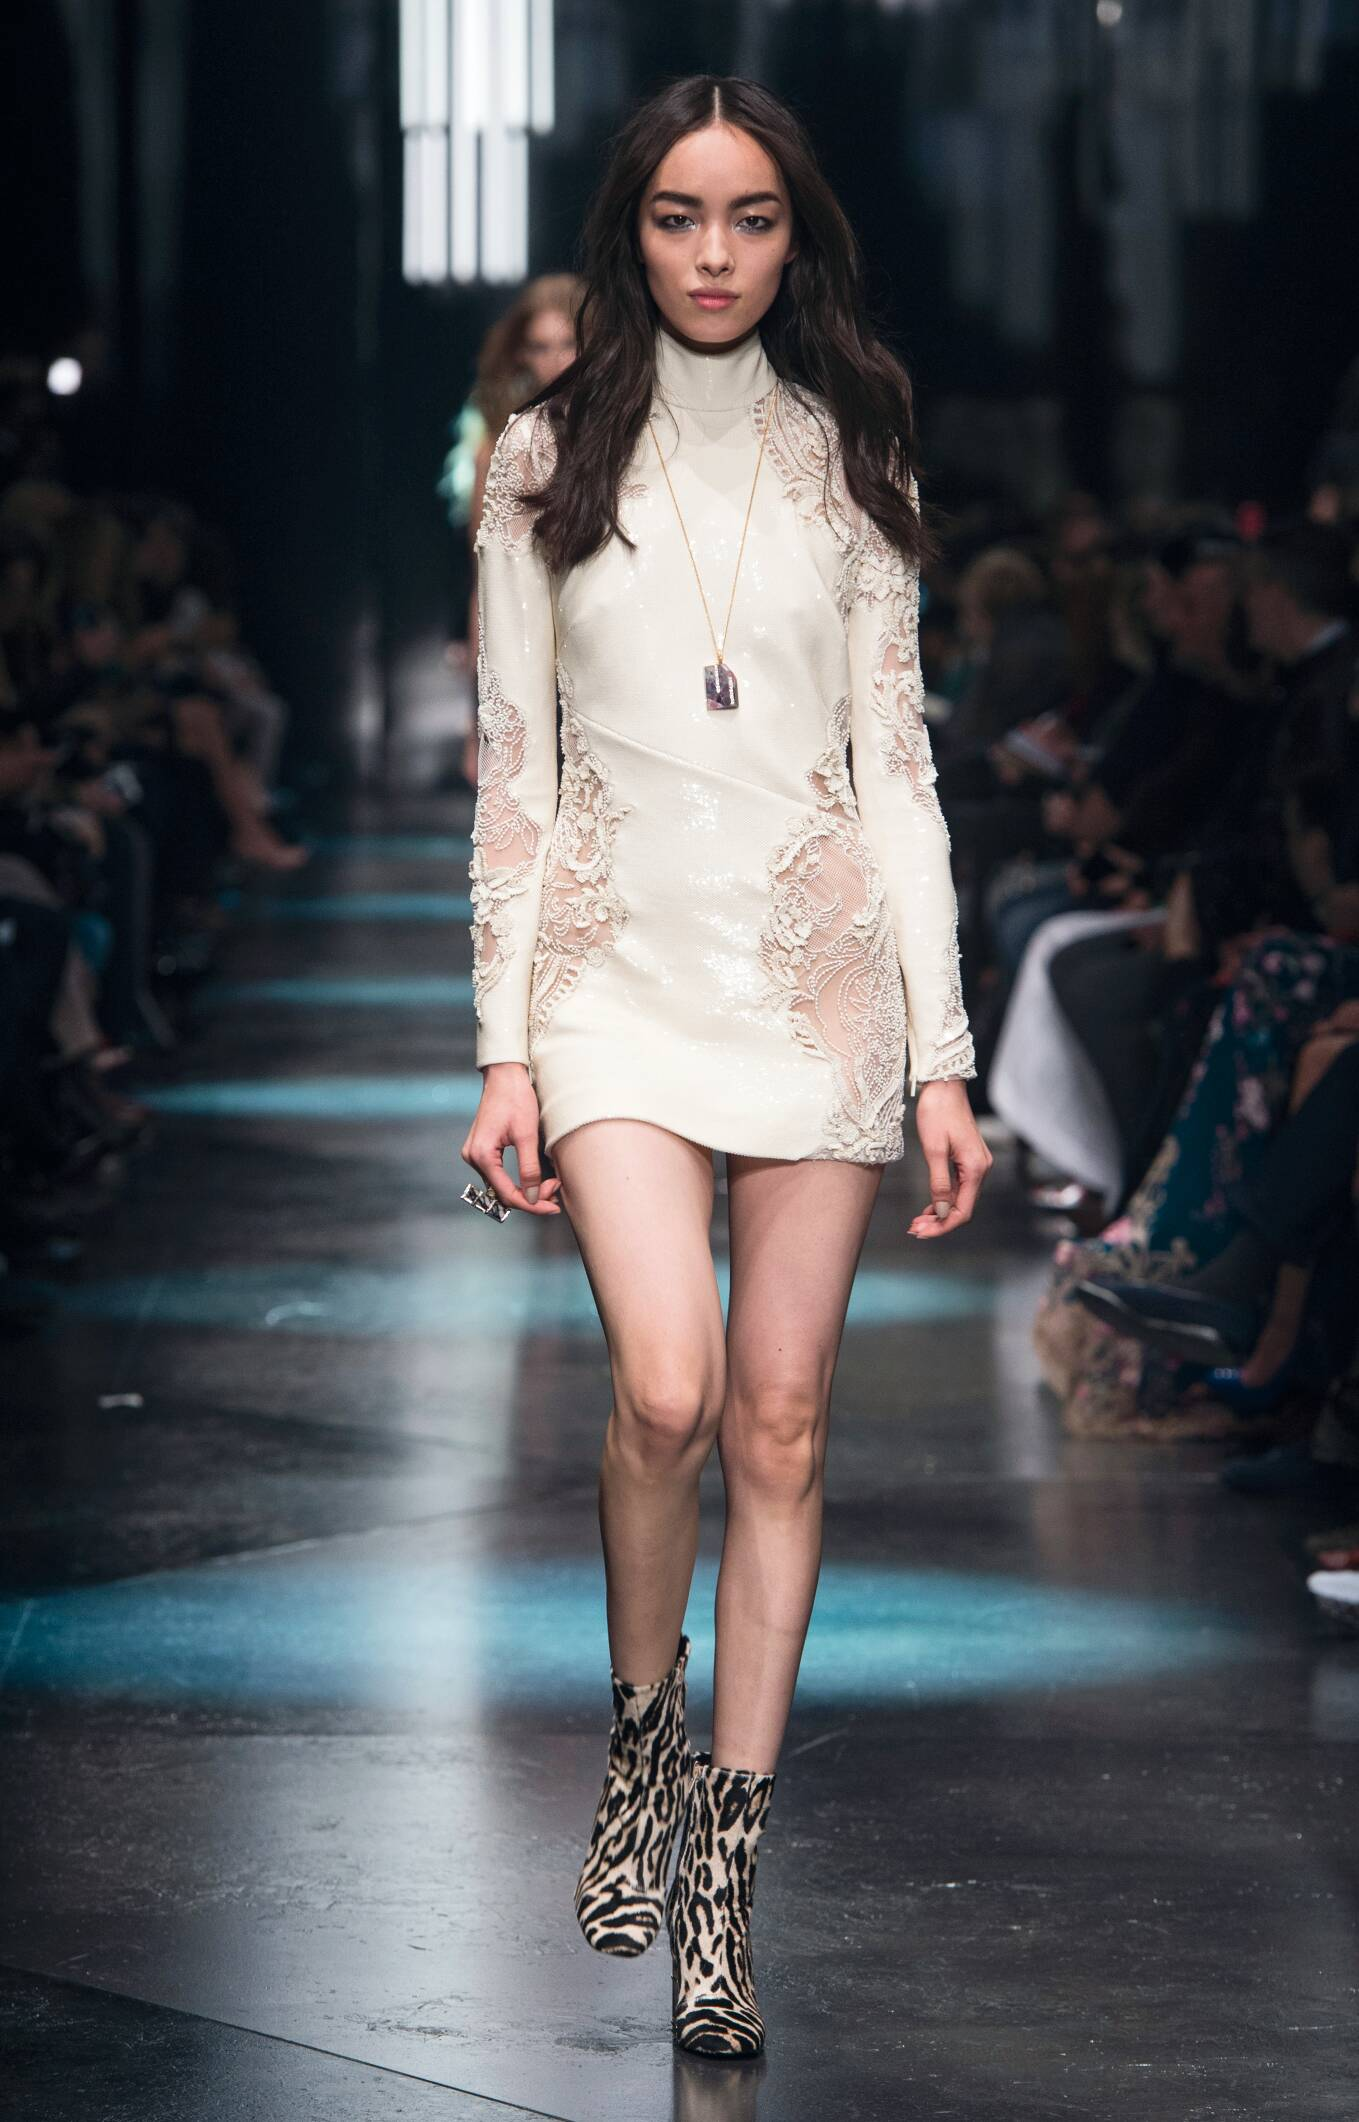 Roberto Cavalli Fall Winter 2015 16 Women's Collection Milan Fashion Week